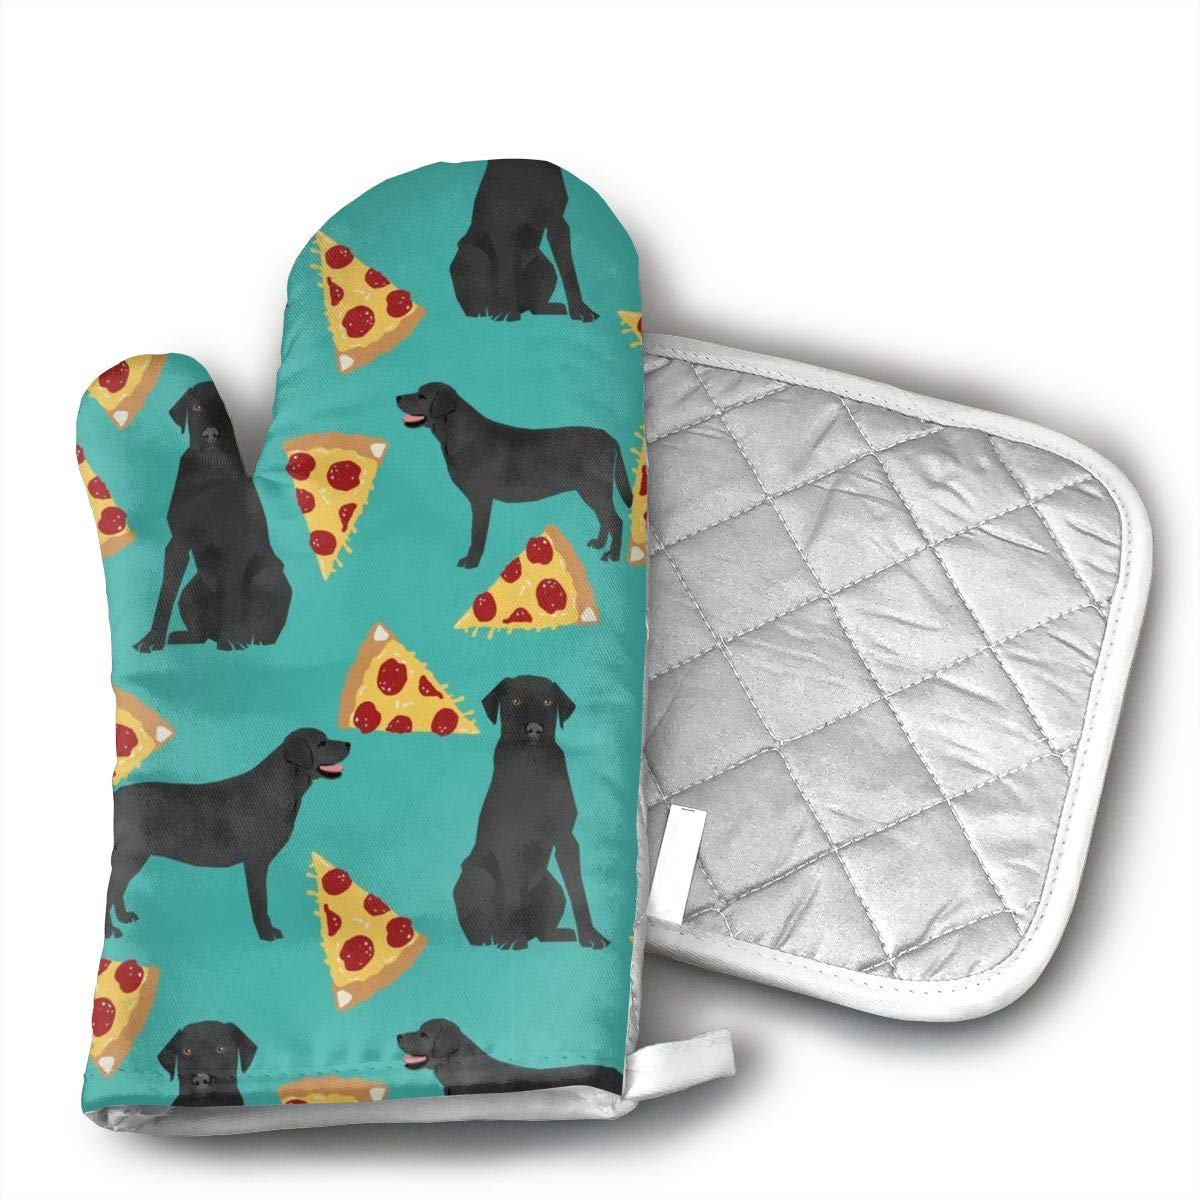 Klasl5 Black Lab Pizza Oven Mitts,Heat Resistant Oven Gloves,Non-Slip Cooking Gloves,Washable Kitchen Mitts for Baking, Barbecue.